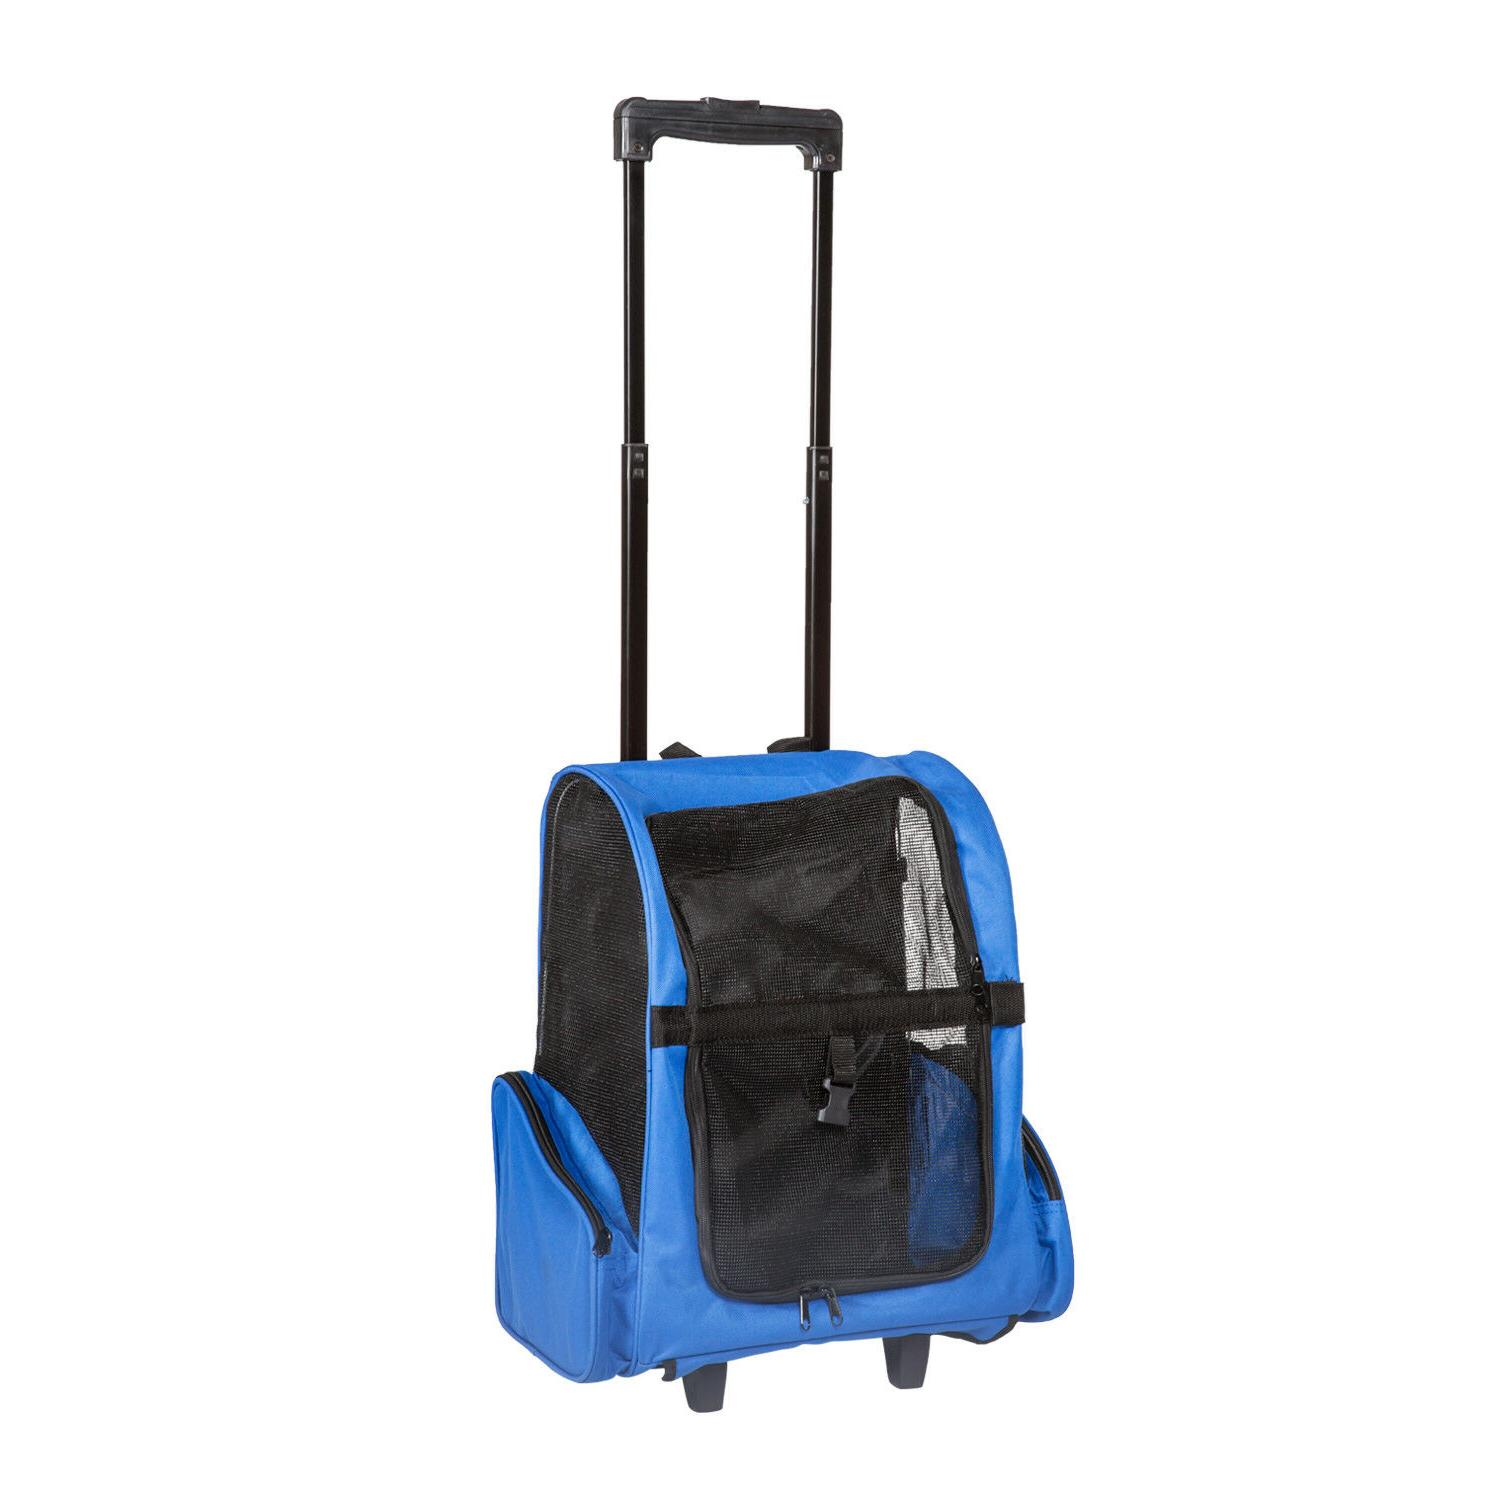 Pet Rolling Travel Wheel Luggage Airline pproved